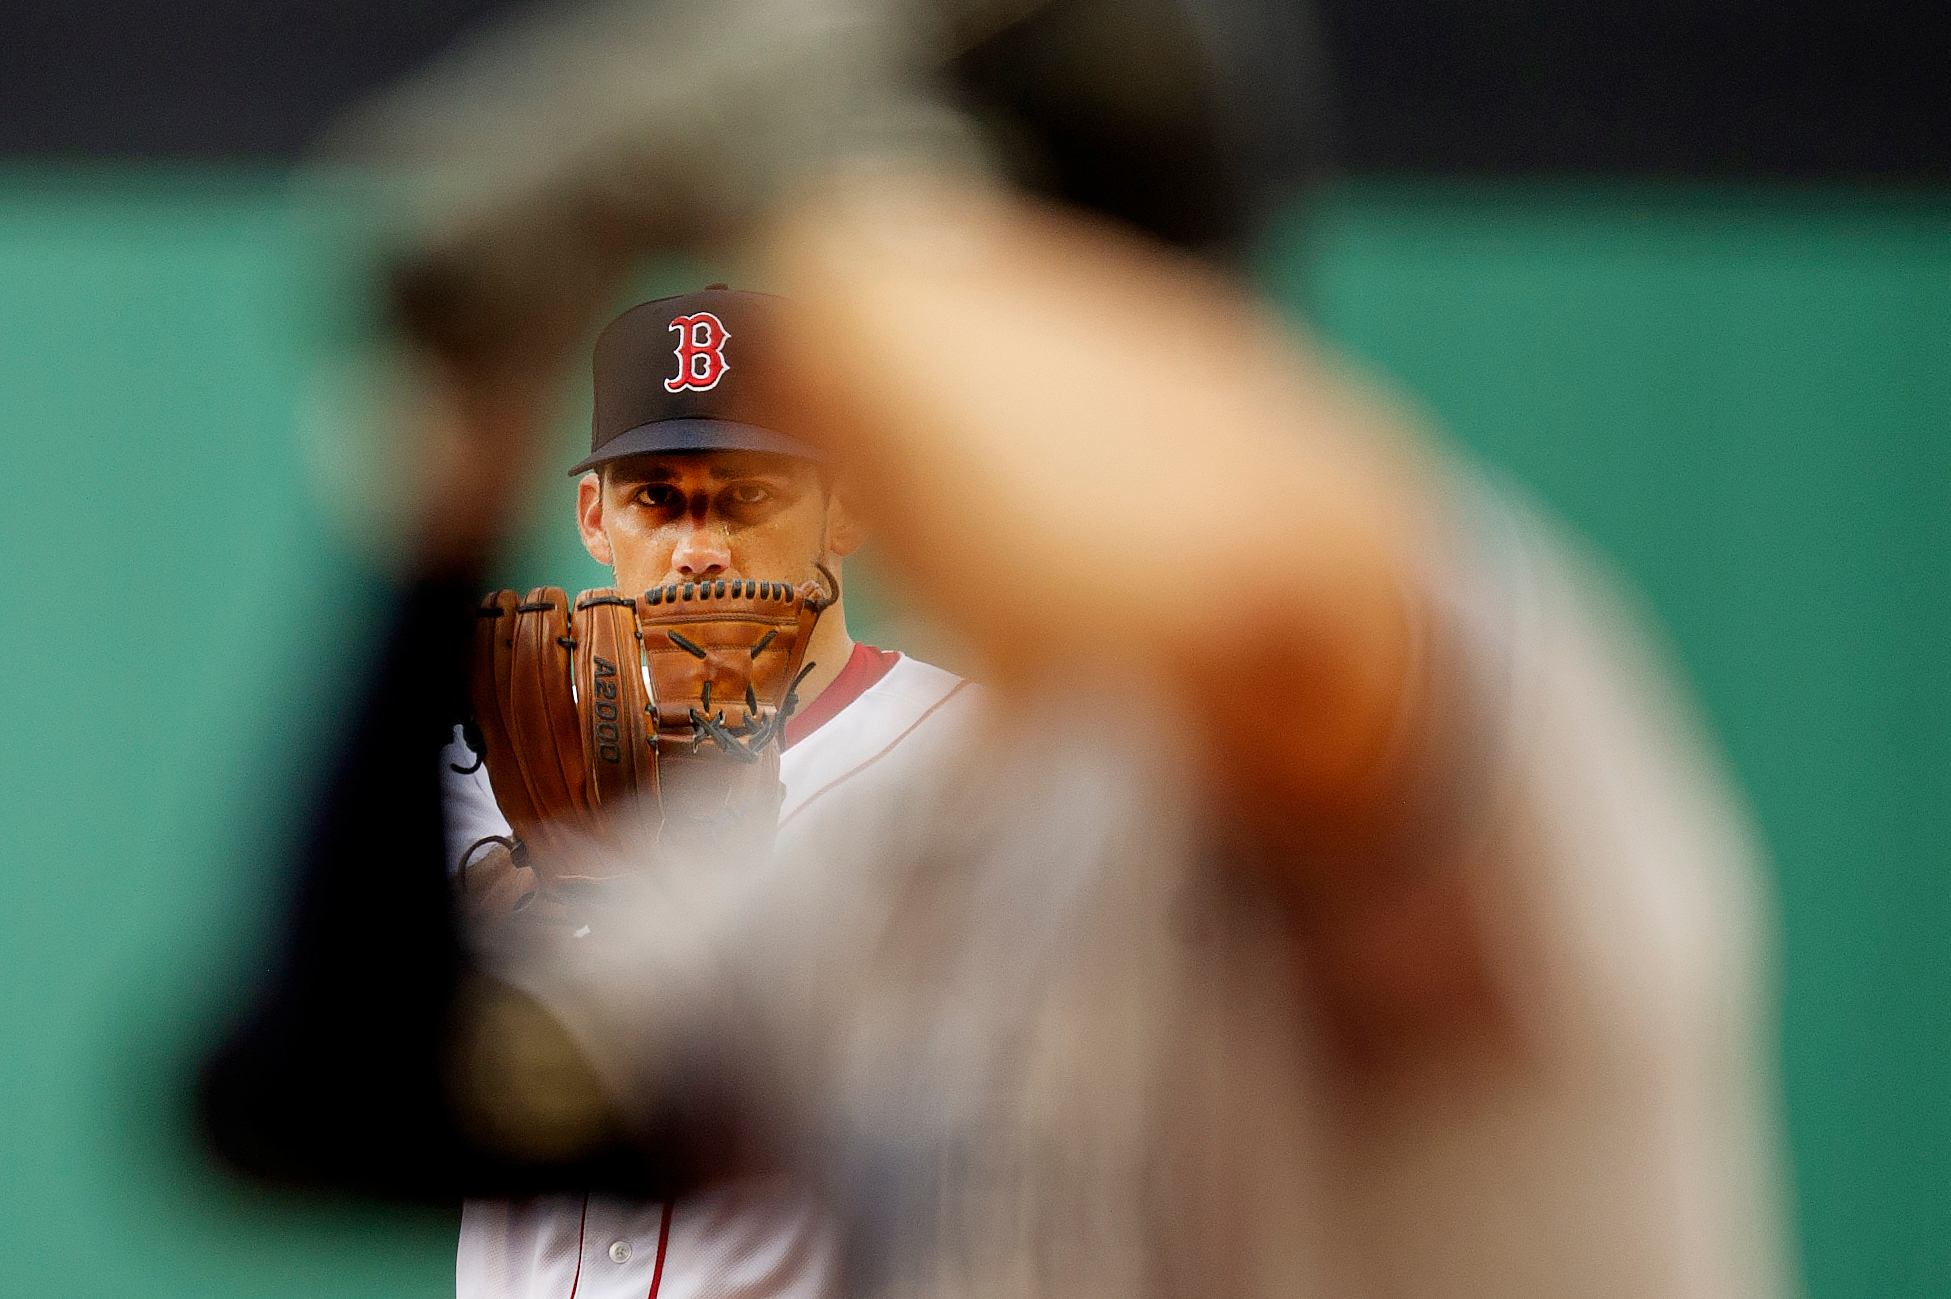 Boston Red Sox pitcher Nathan Eovaldi pitches during the game against New York Yankees at Fenway Park in Boston, Massachusetts on Saturday, August 4, 2018.